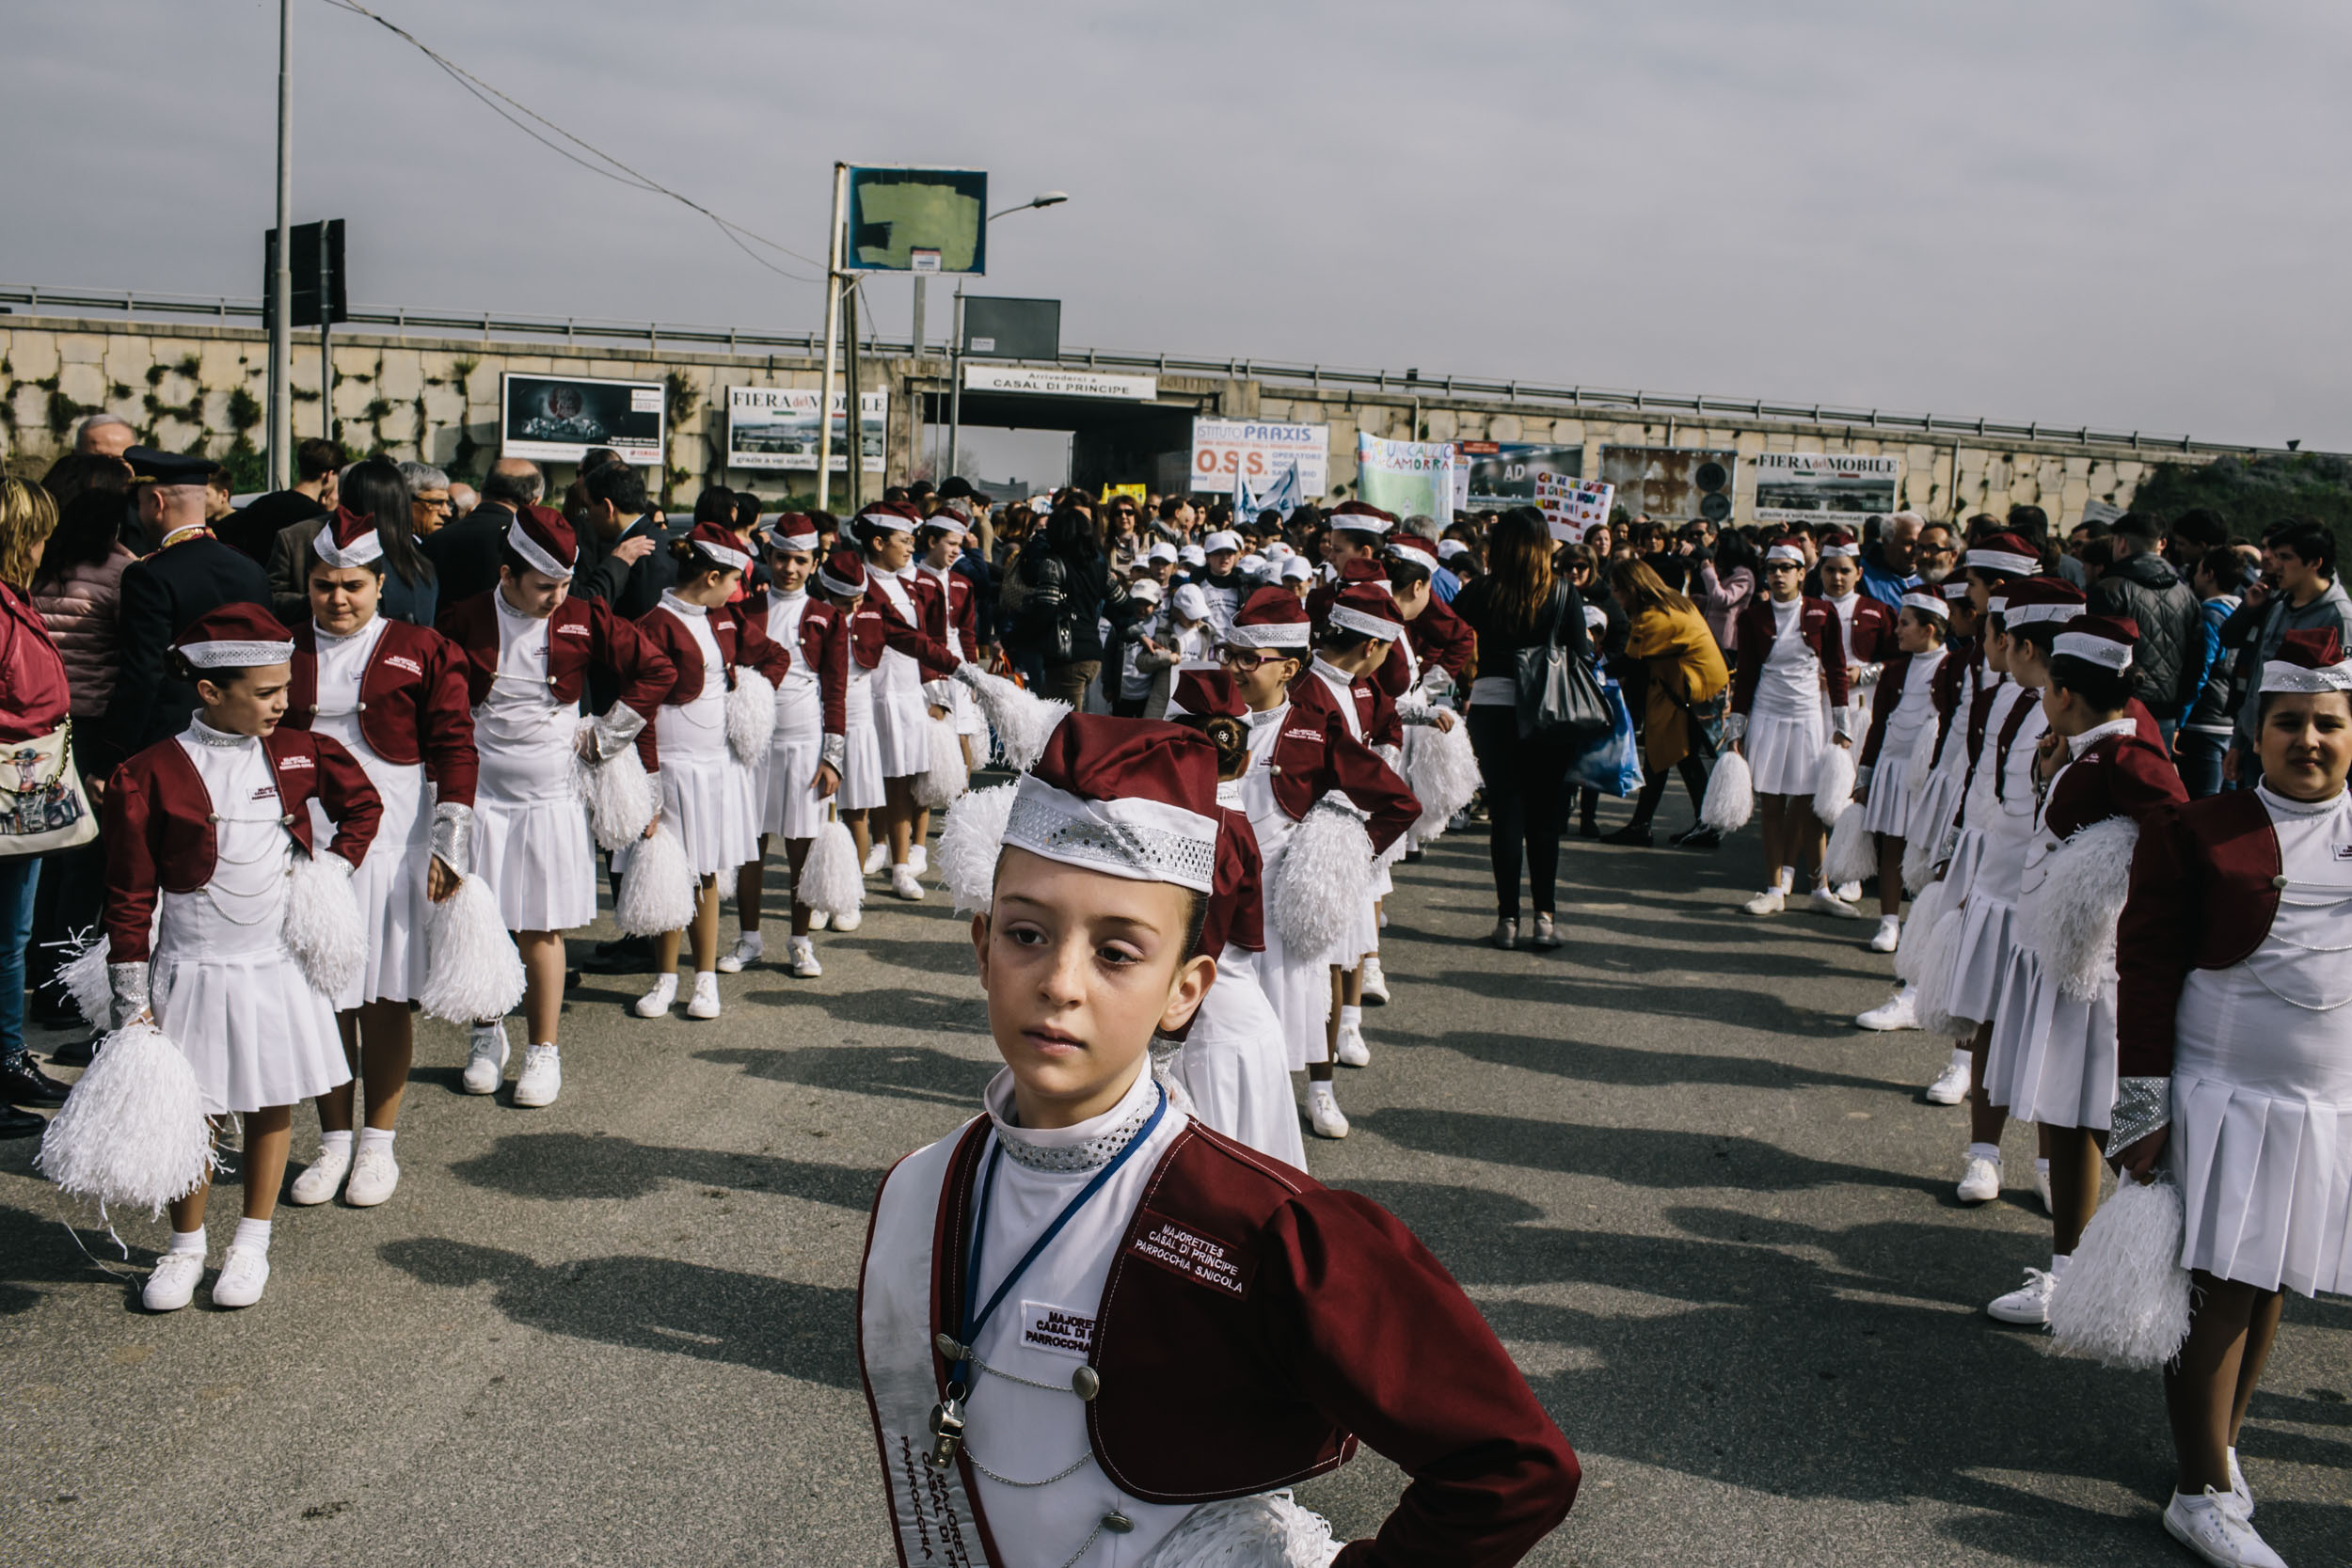 Children in a marching group stand in formation before the start of a protest